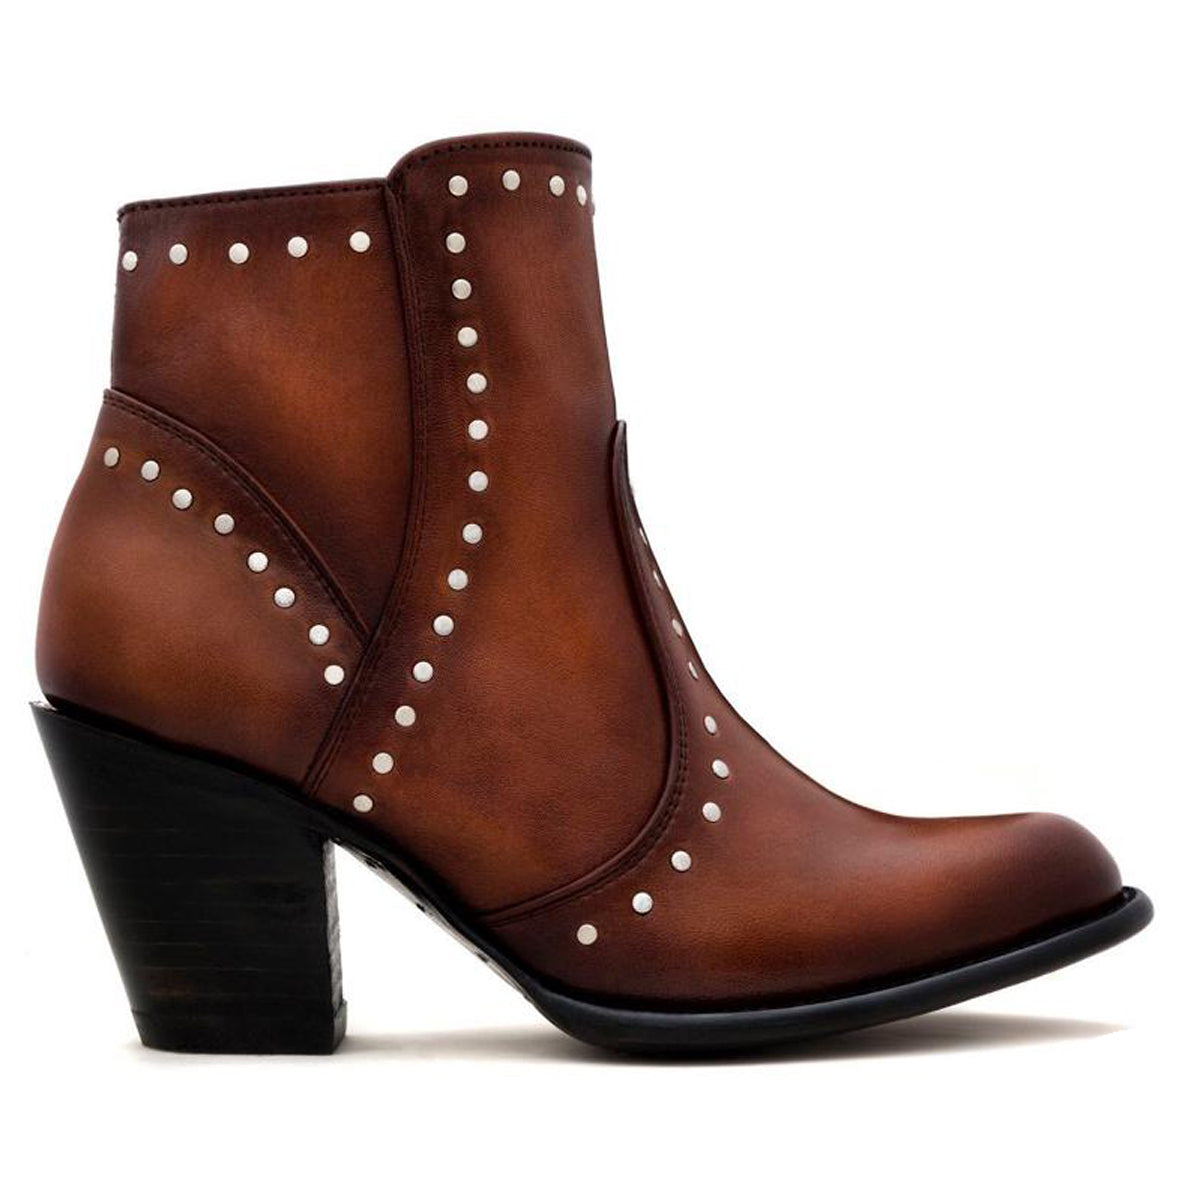 Sidney Caramel - Short Boot